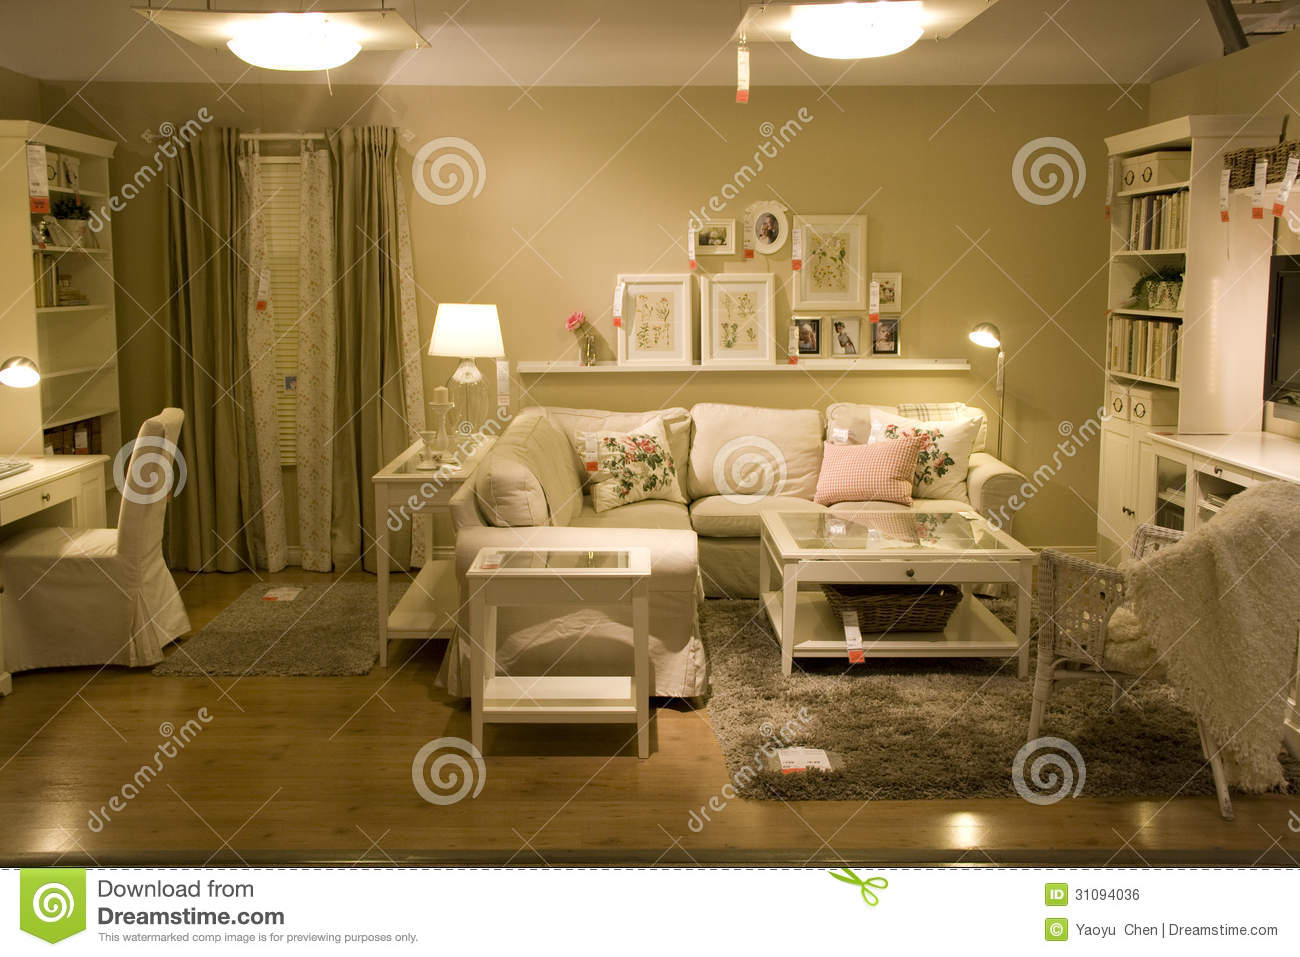 Living room furniture store editorial photo image 31094036 for Living room furniture stores